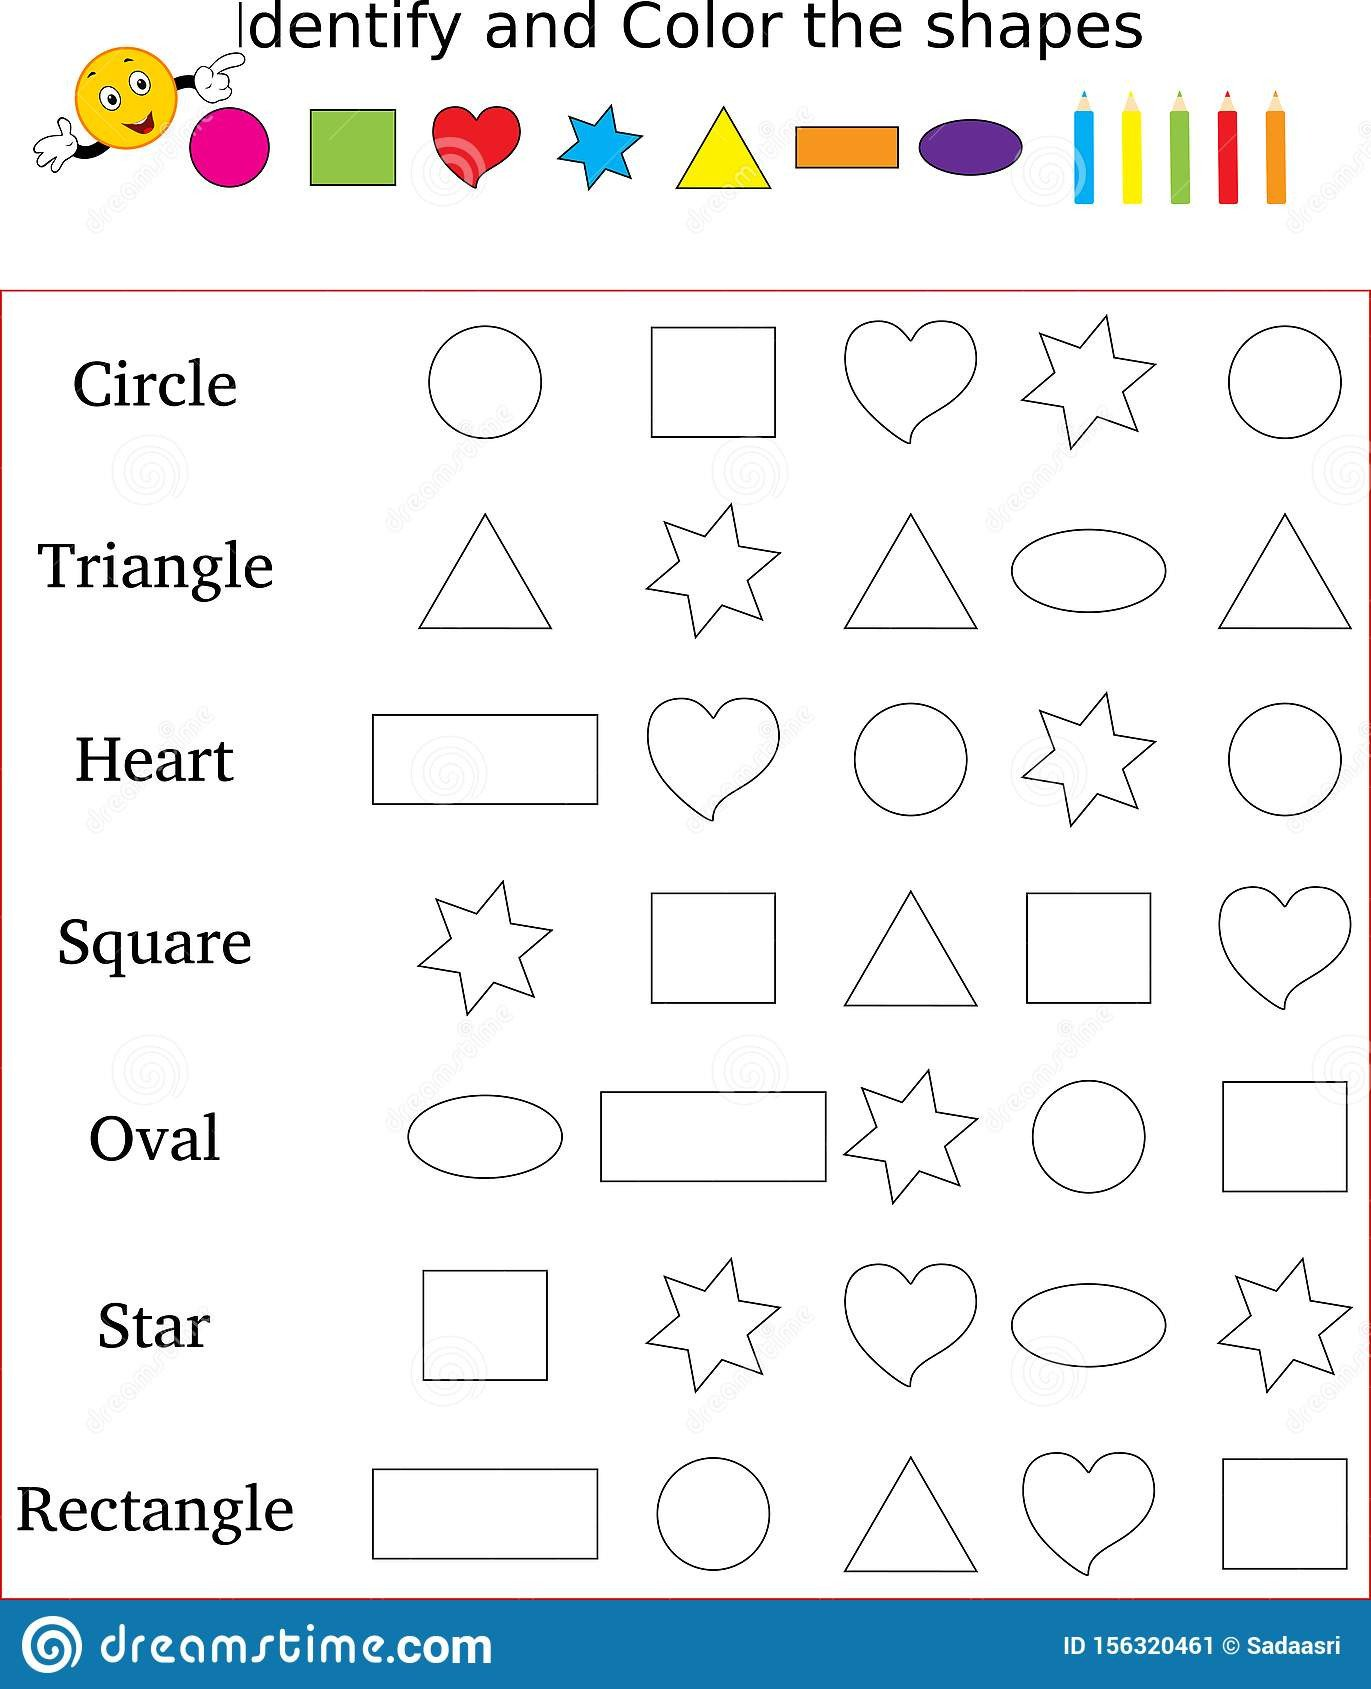 Kindergarten Shapes Worksheets Free Identify and Color the Correct Shape Worksheet Stock Image